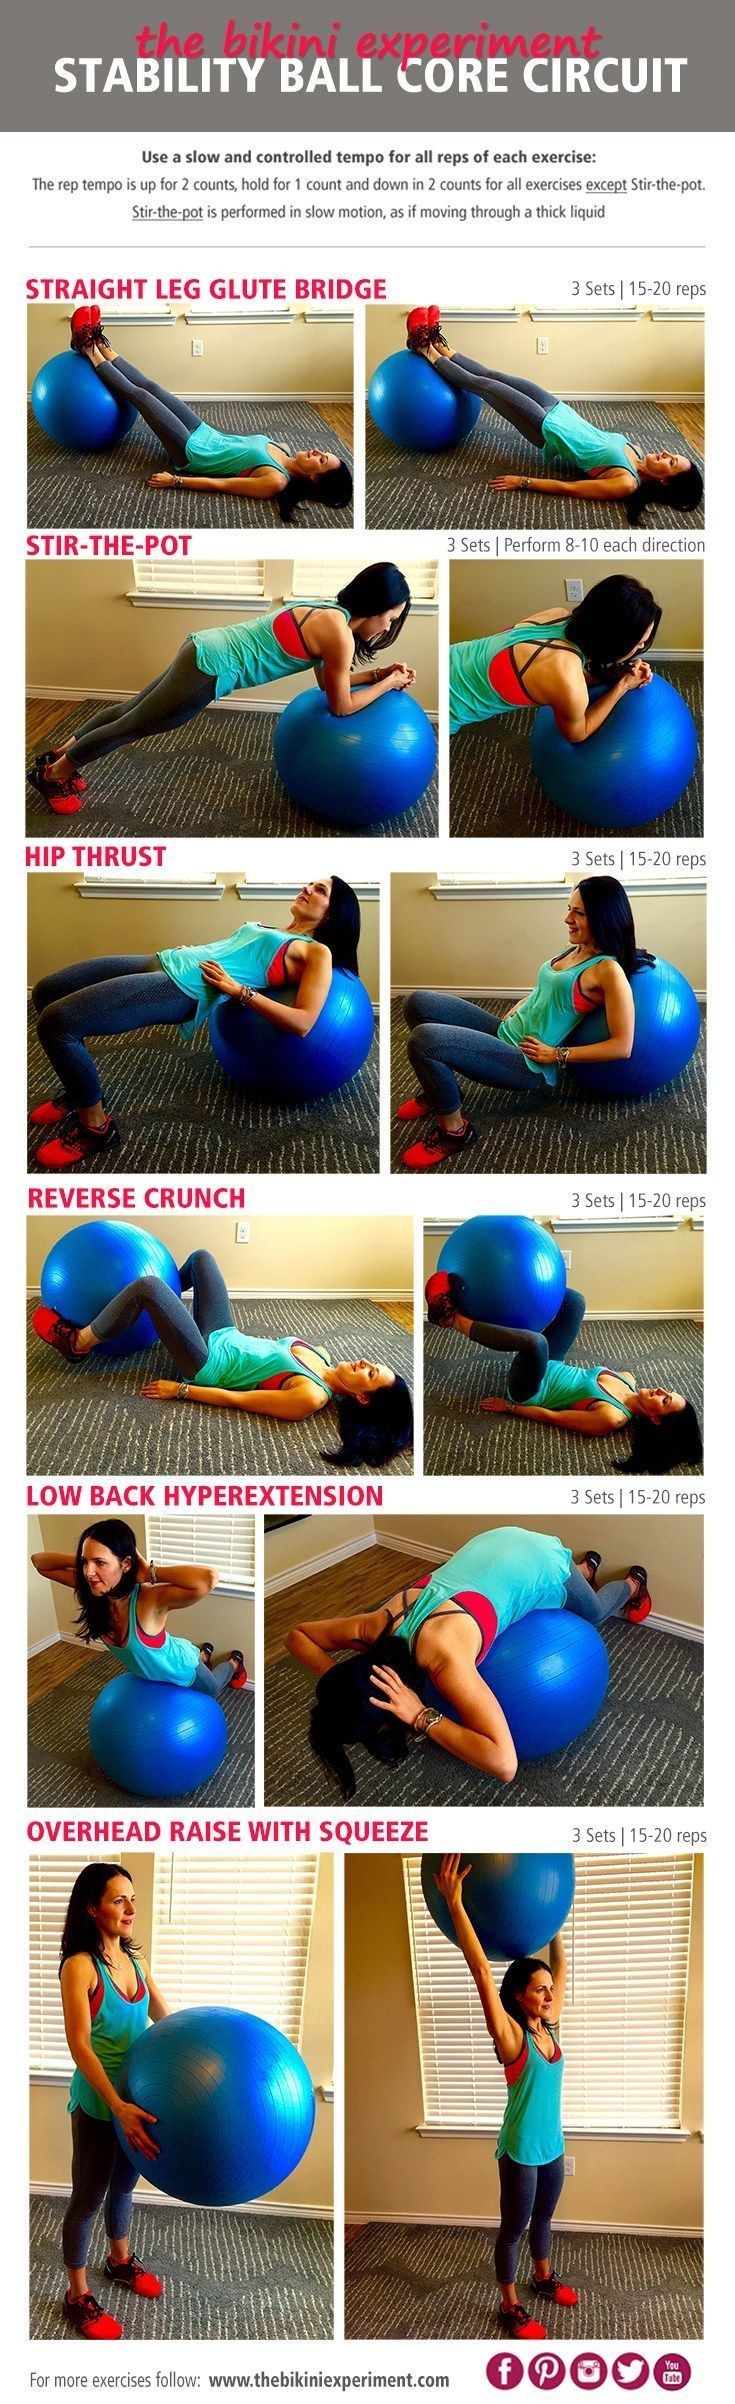 Get ready to work your core with these dynamic moves using the stability ball. This core stability ball circuit was designed as a workout for beginners.